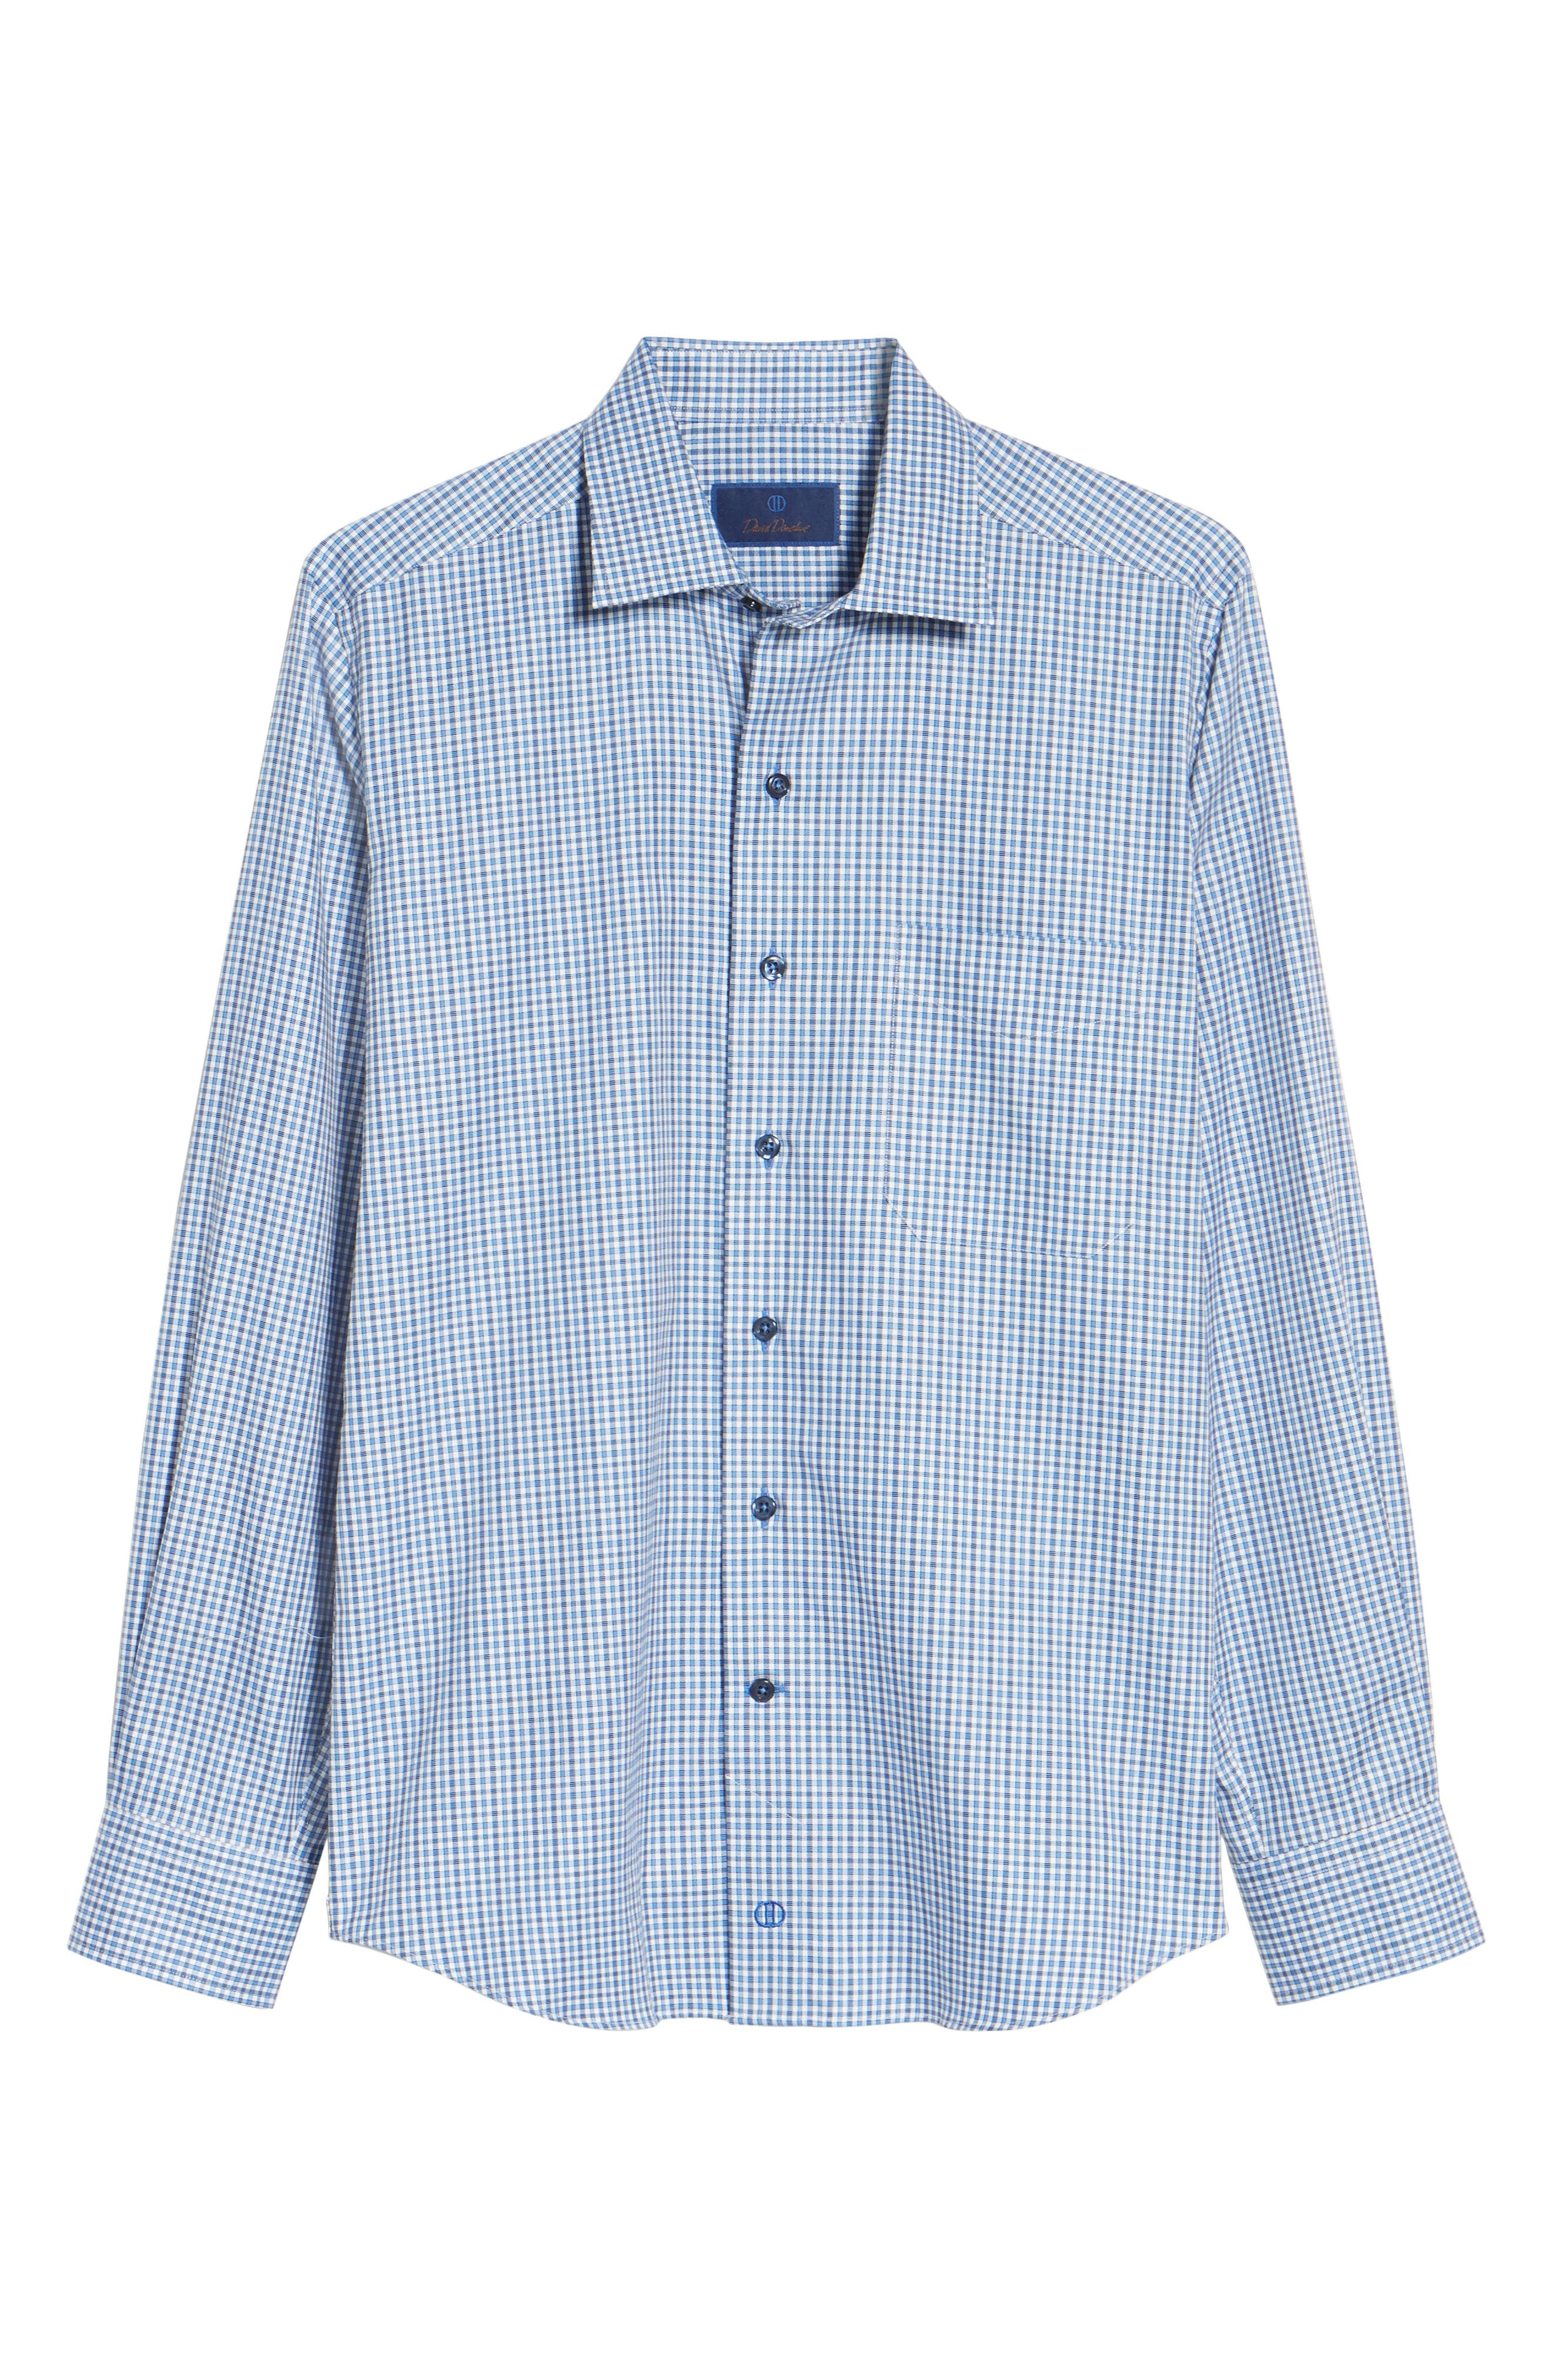 Plaid Regular Fit Sport Shirt,                             Alternate thumbnail 6, color,                             423